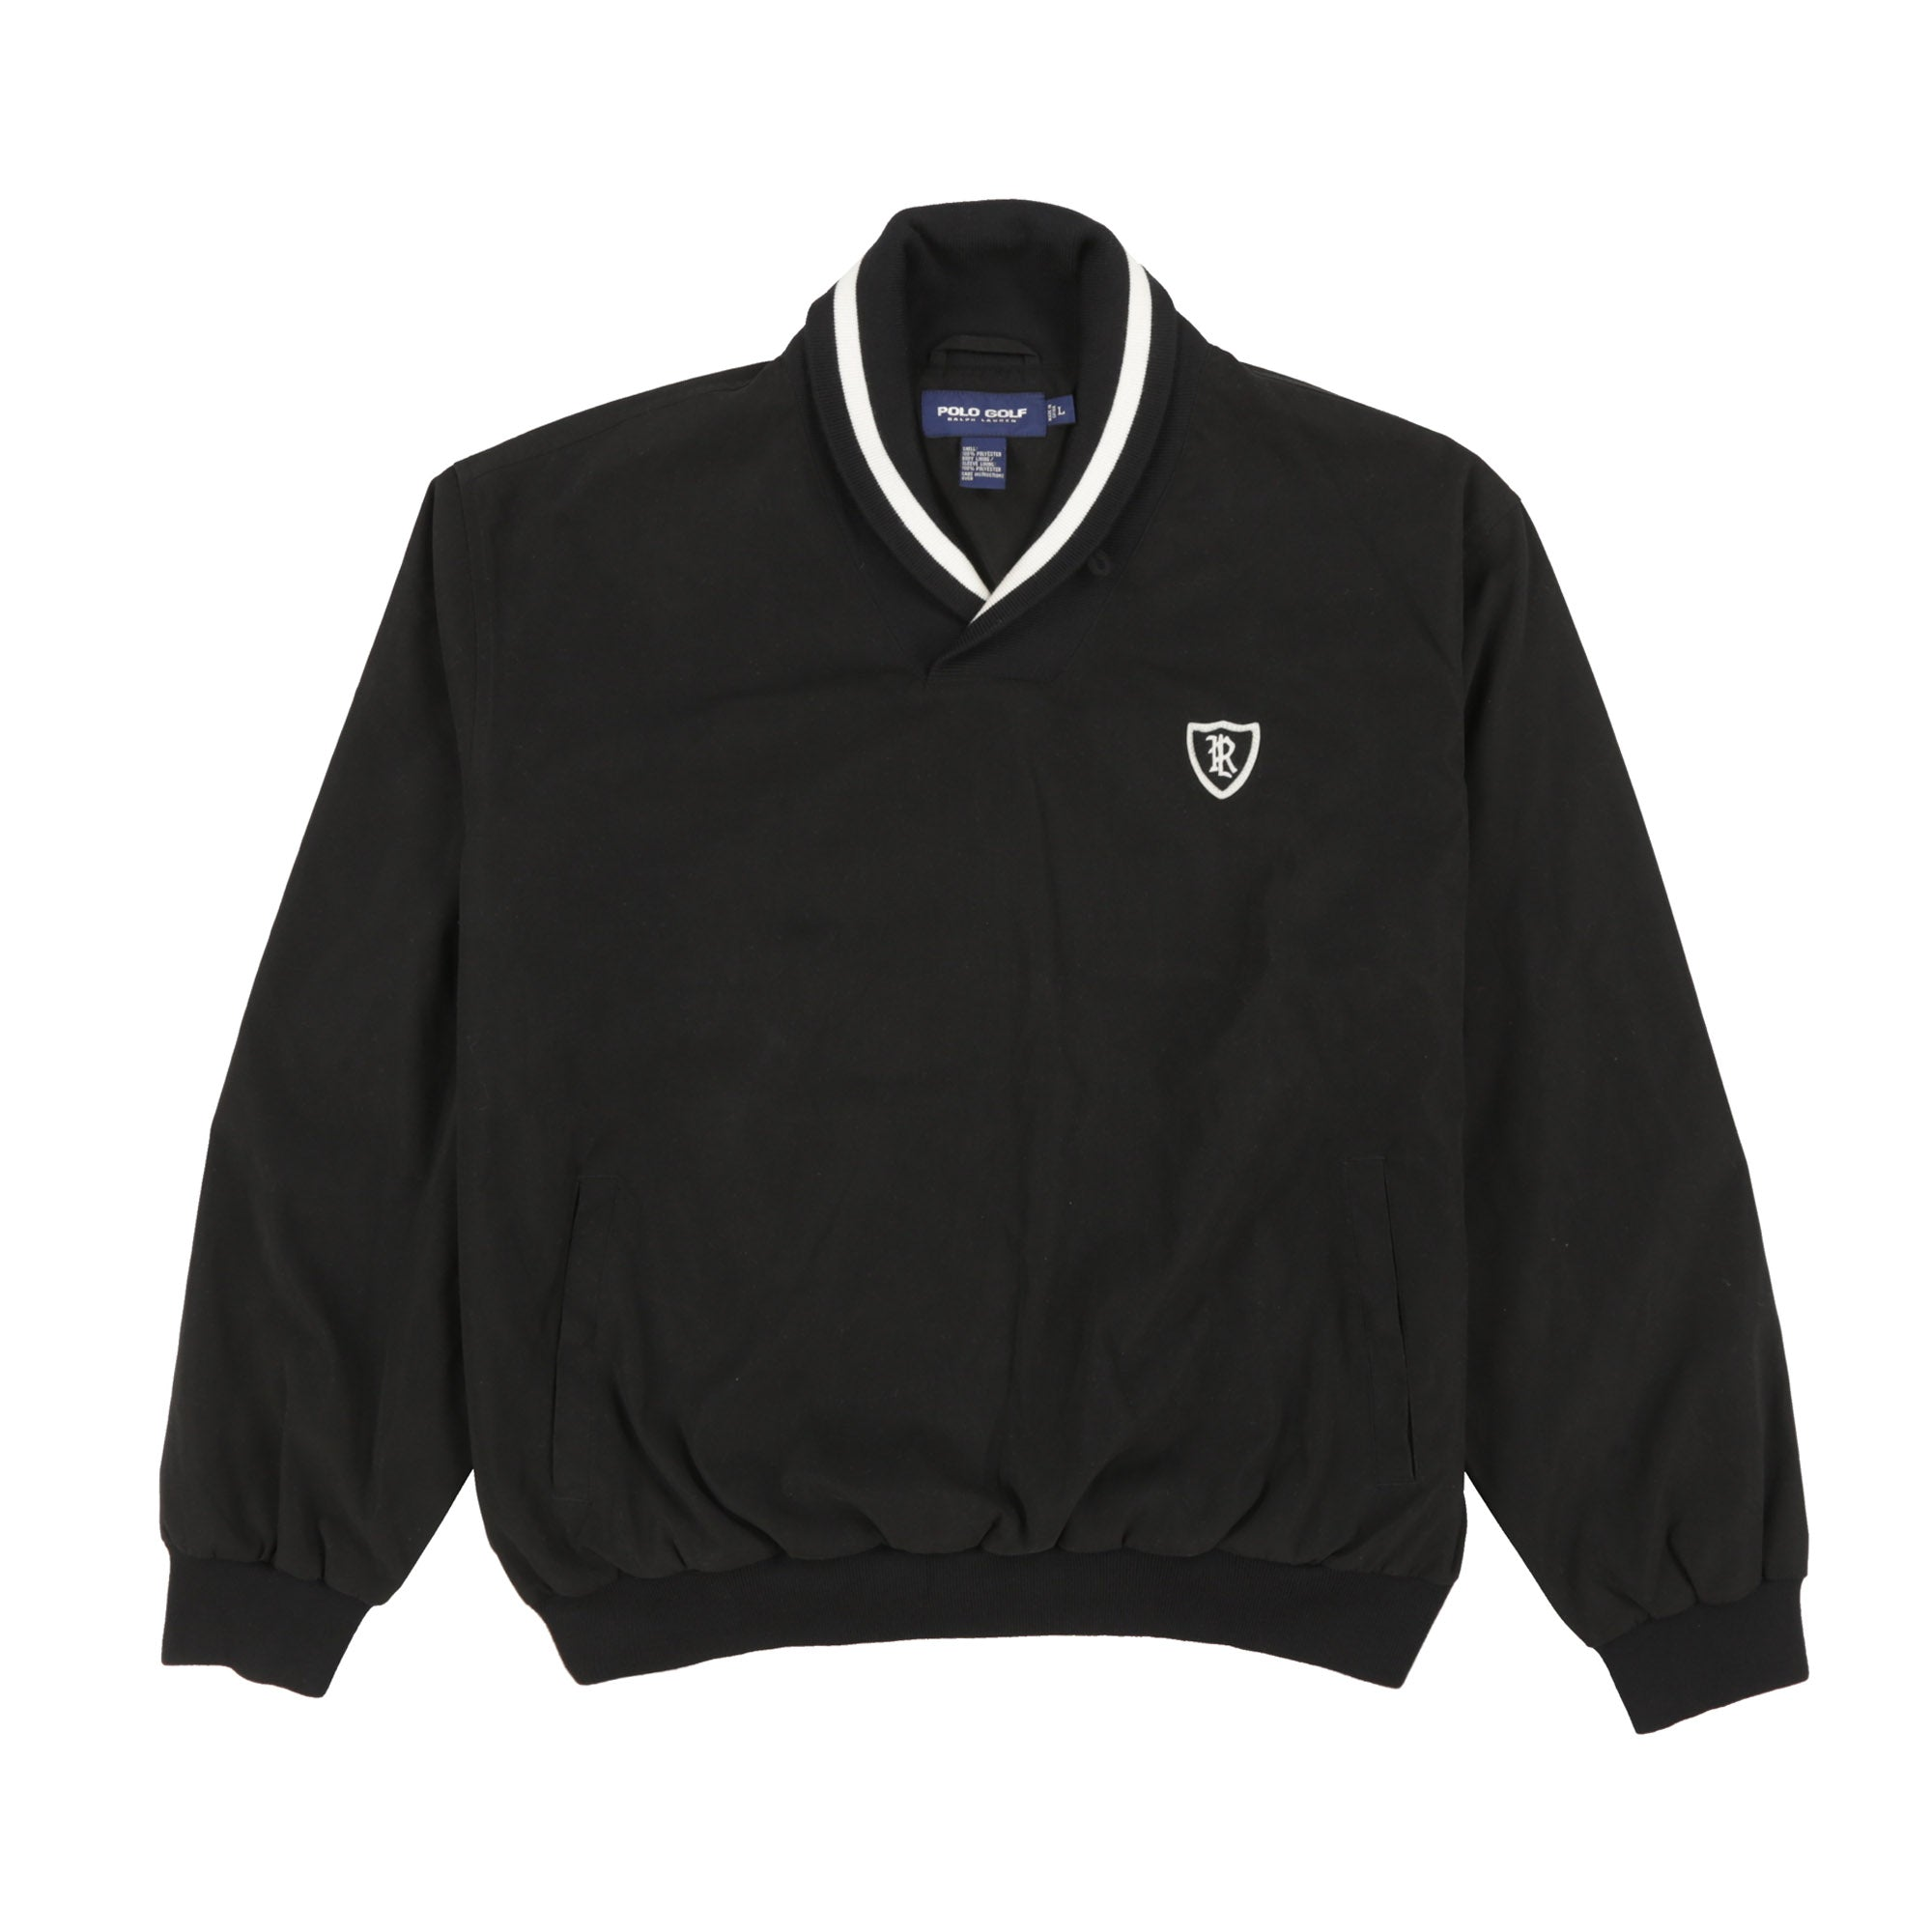 POLO GOLF PIPING ROC SWEATSHIRT // BLACK